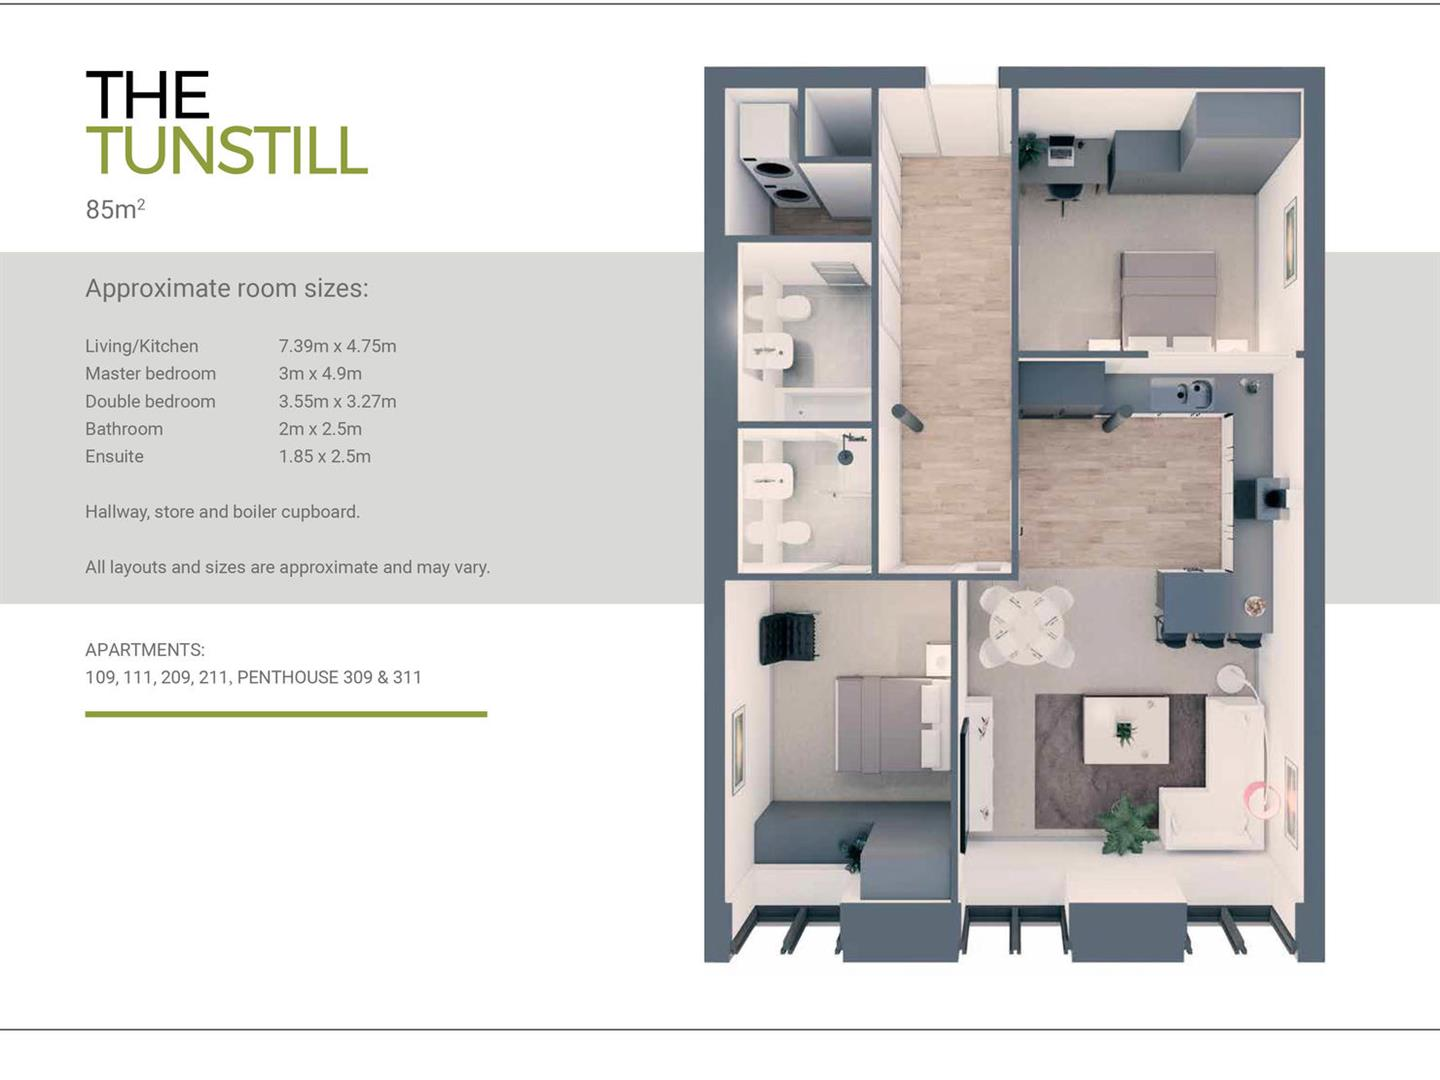 2 Bedroom Apartment For Sale - the tunstall floorplan.jpg